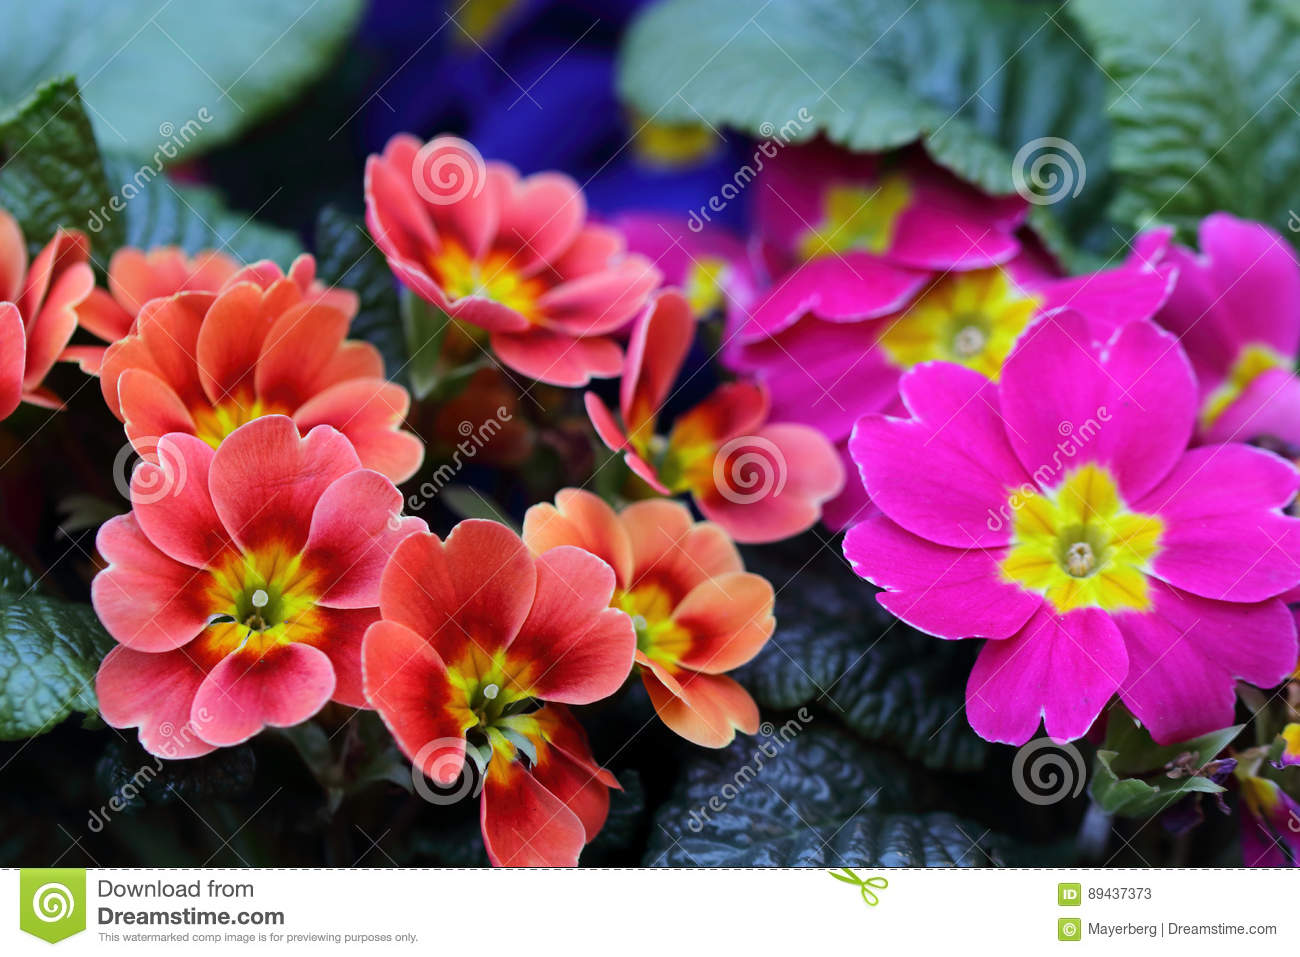 There Are Many Types And Colors Of Primula Flowers Stock Image ...